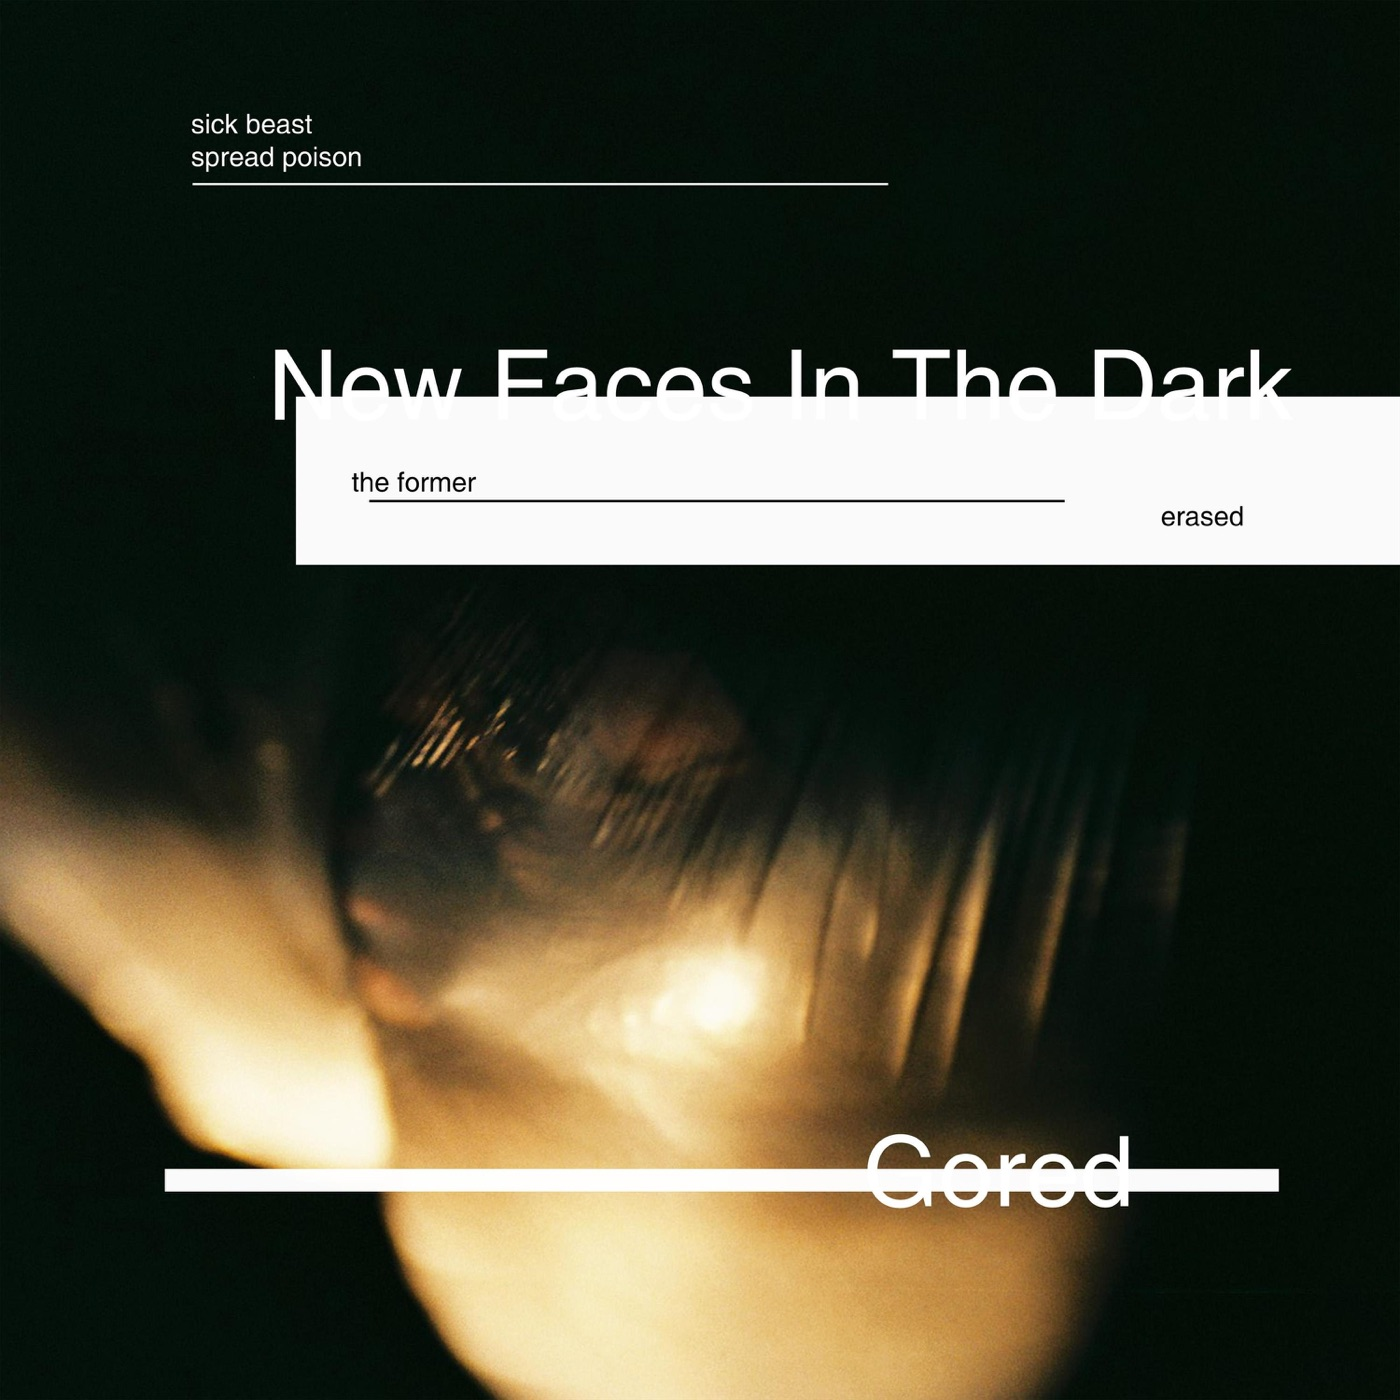 Loathe - Gored / New Face In the Dark [singles] (2019)